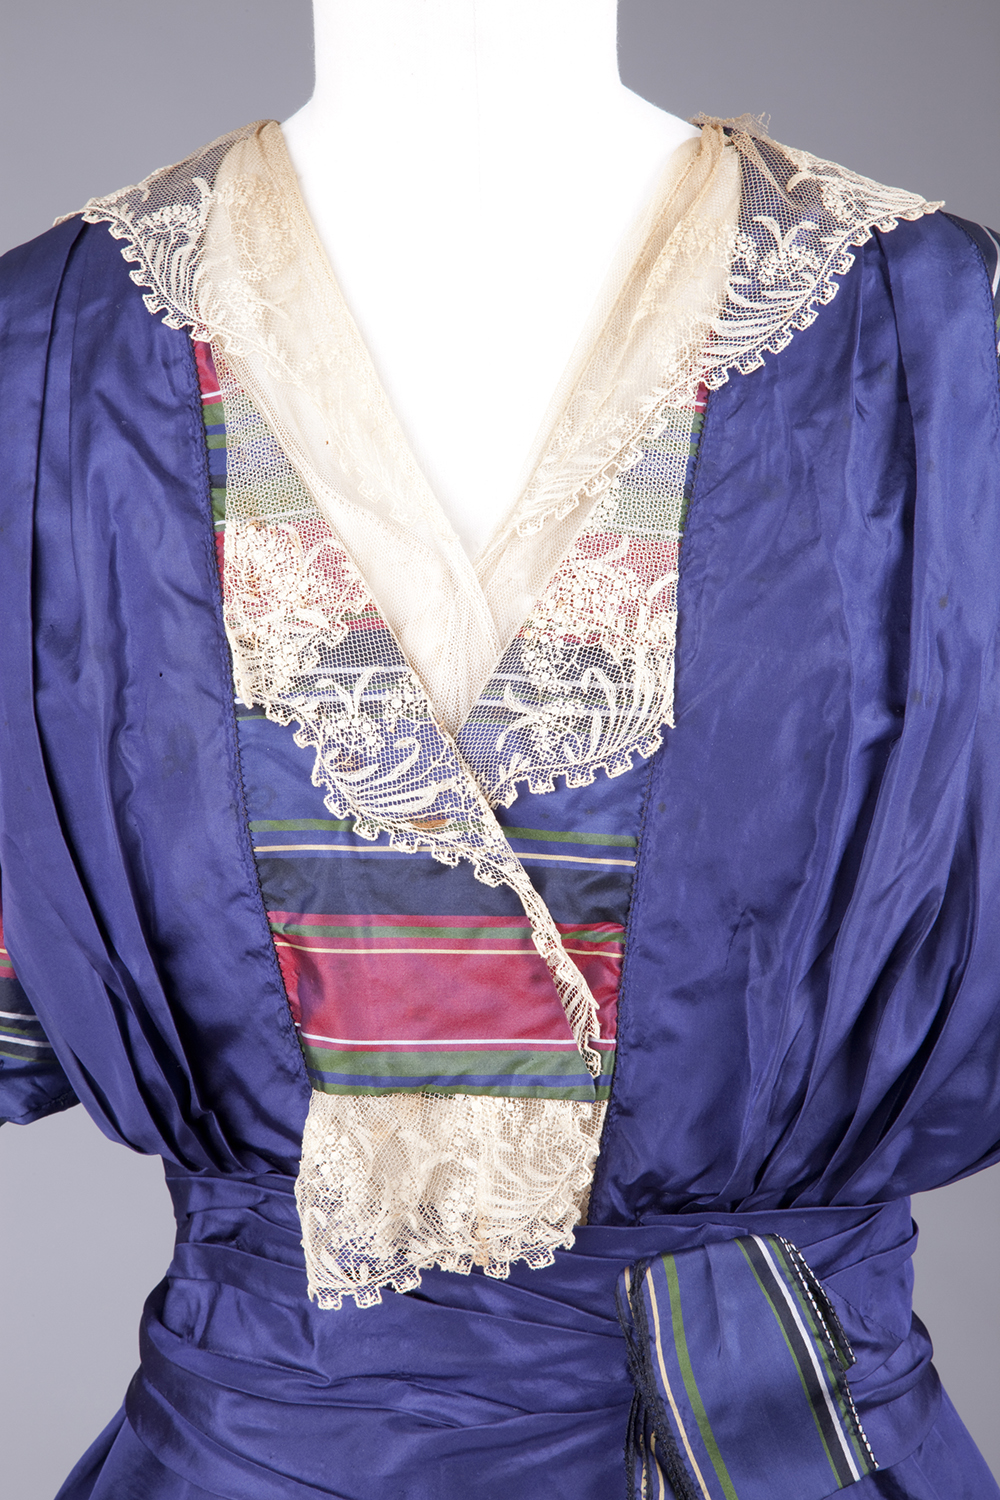 Dress, 1915-18 (more likely 1913-14), silk taffeta, Goldstein Museum of Design, CX-00219